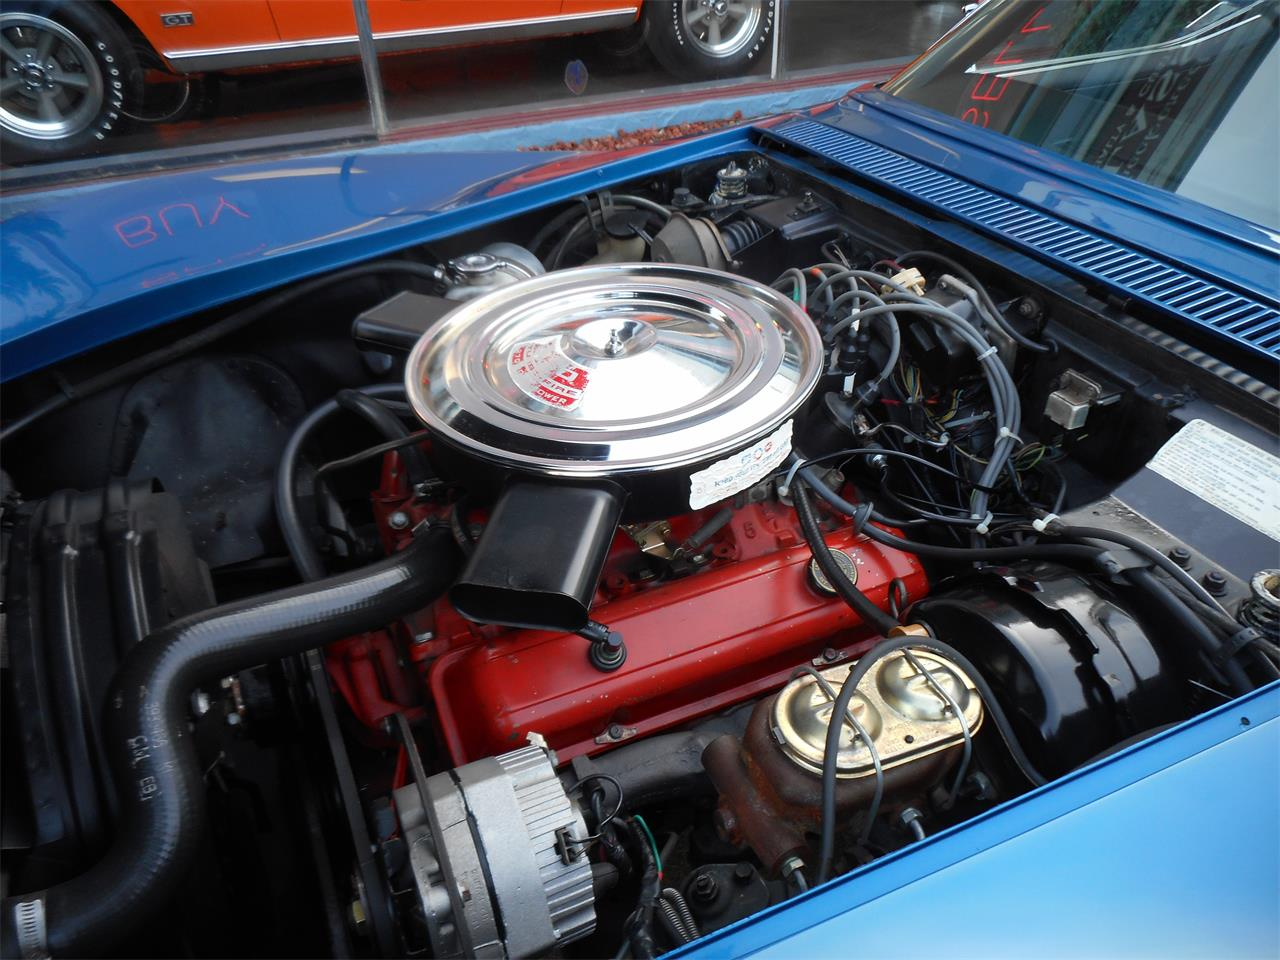 Large Picture of 1971 Corvette located in Gilroy CaliforniaC - $34,900.00 Offered by Checkered Flag Classic Inc. - MO34